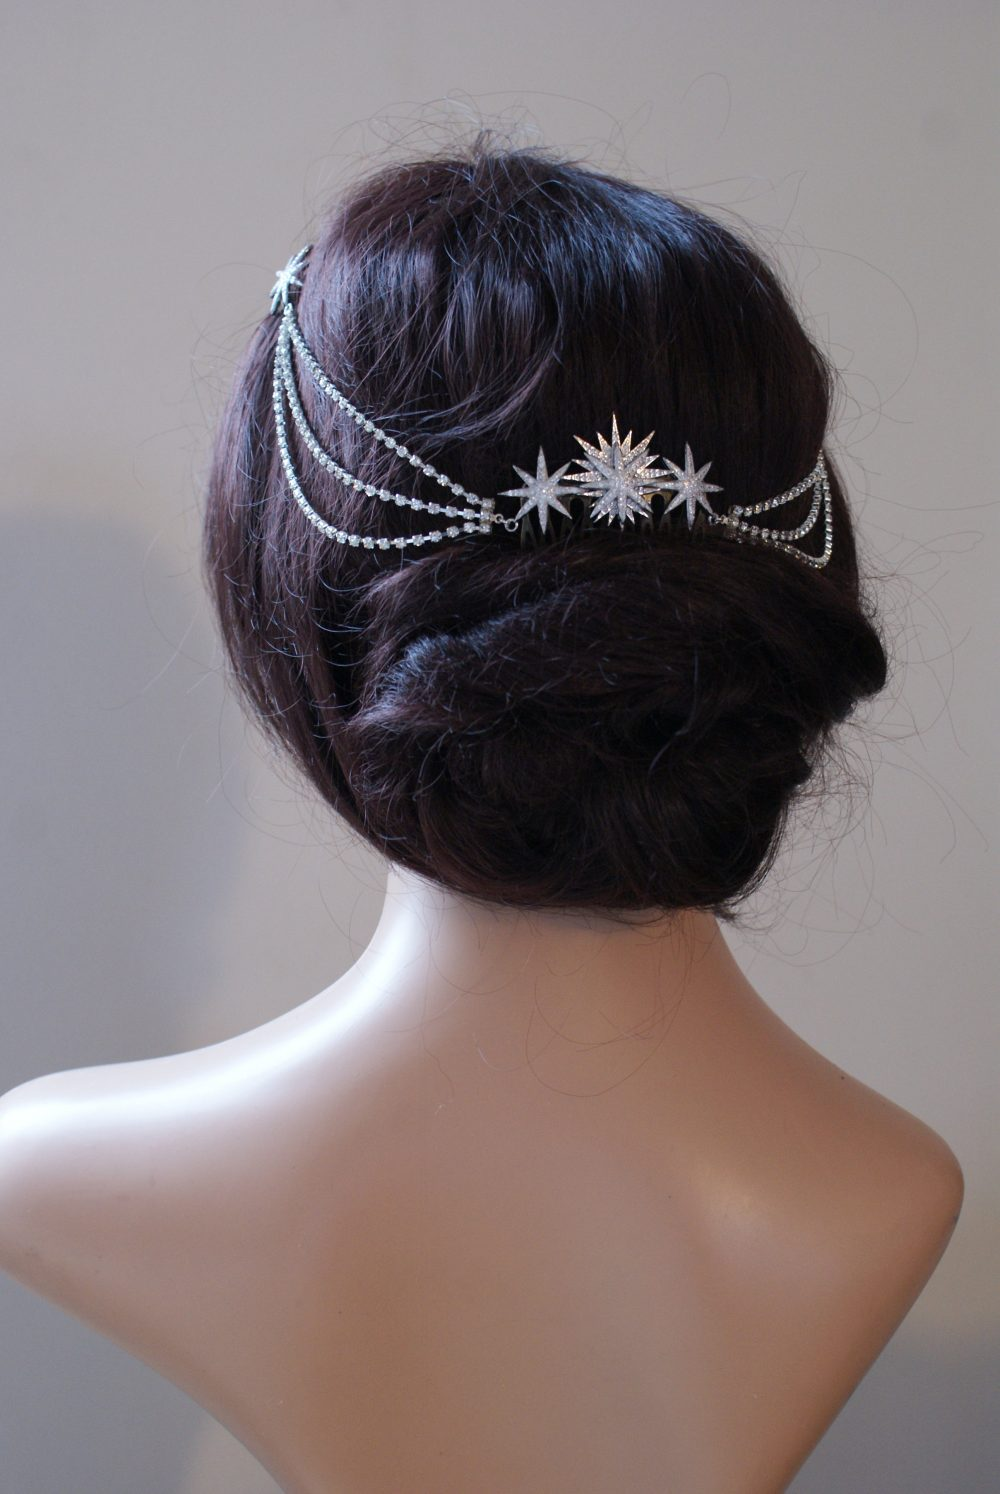 Luxury Star Bridal Headpiece With Crystal Hair Drape - Accessory Swags Silver Chain- Modern Stars